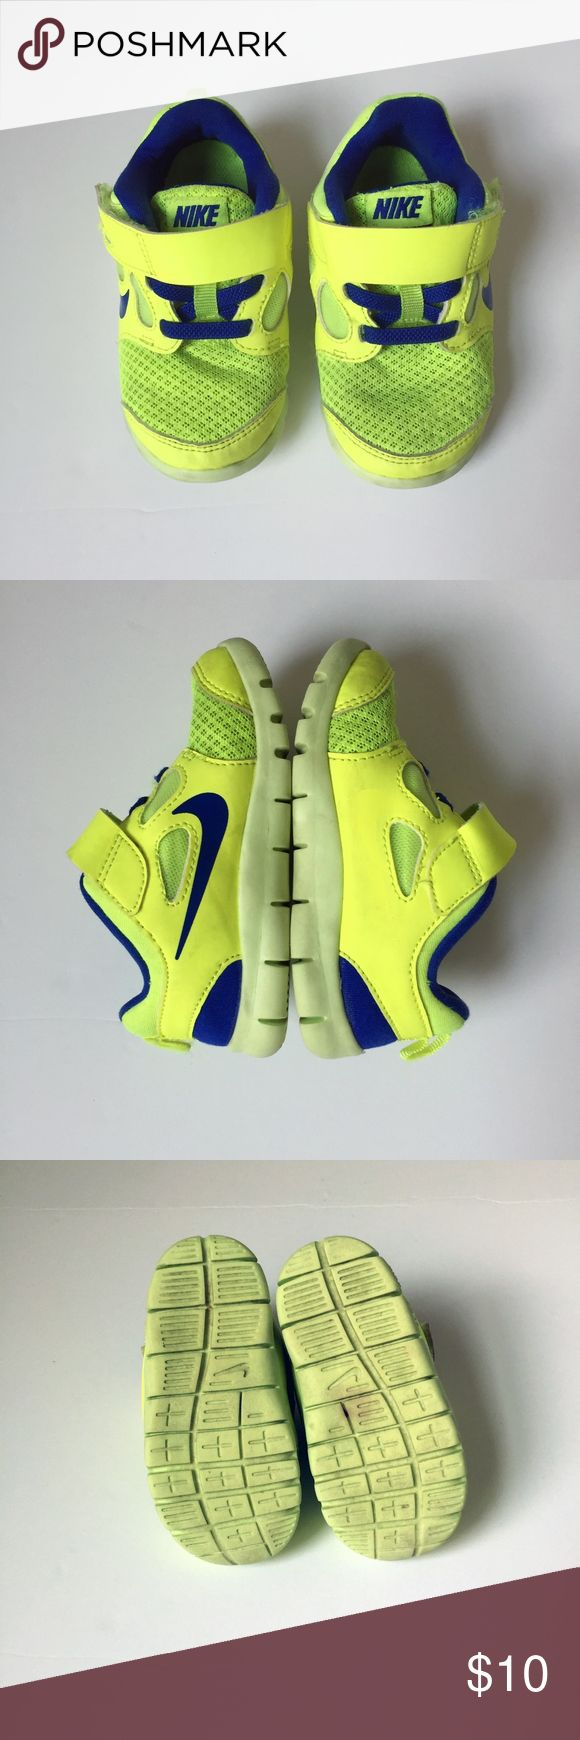 NIKE FREE 5 neon yellow shoes sneakers toddler 7C NIKE FREE 5   easy on/off  velcro closure.  size: 7C toddler  running athletic slip ons slip on comfort first Nike Shoes Sneakers